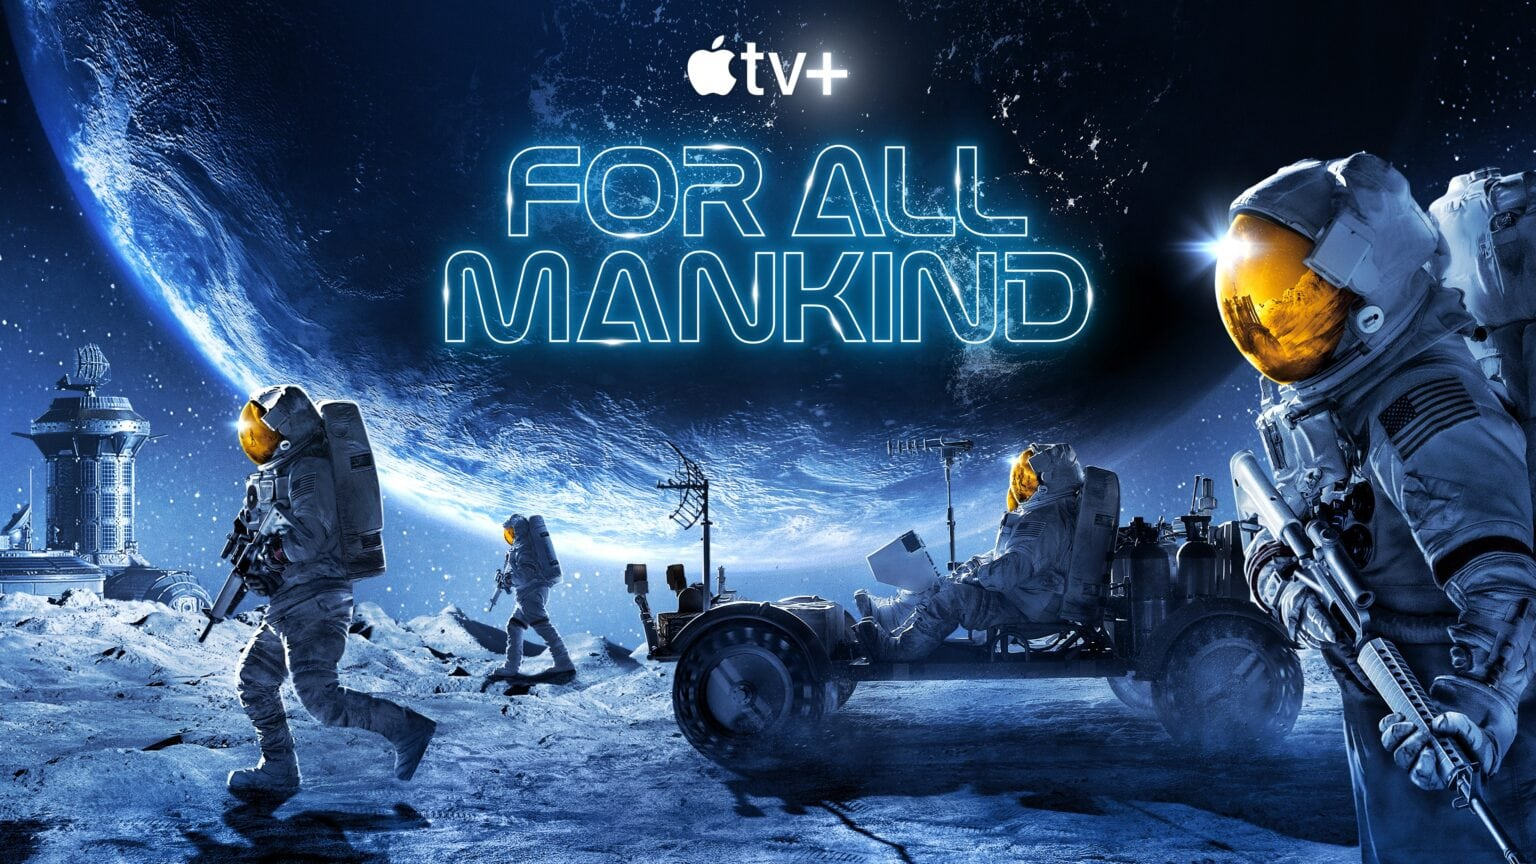 For All Mankind review: The Cold War heats up in Season 2.